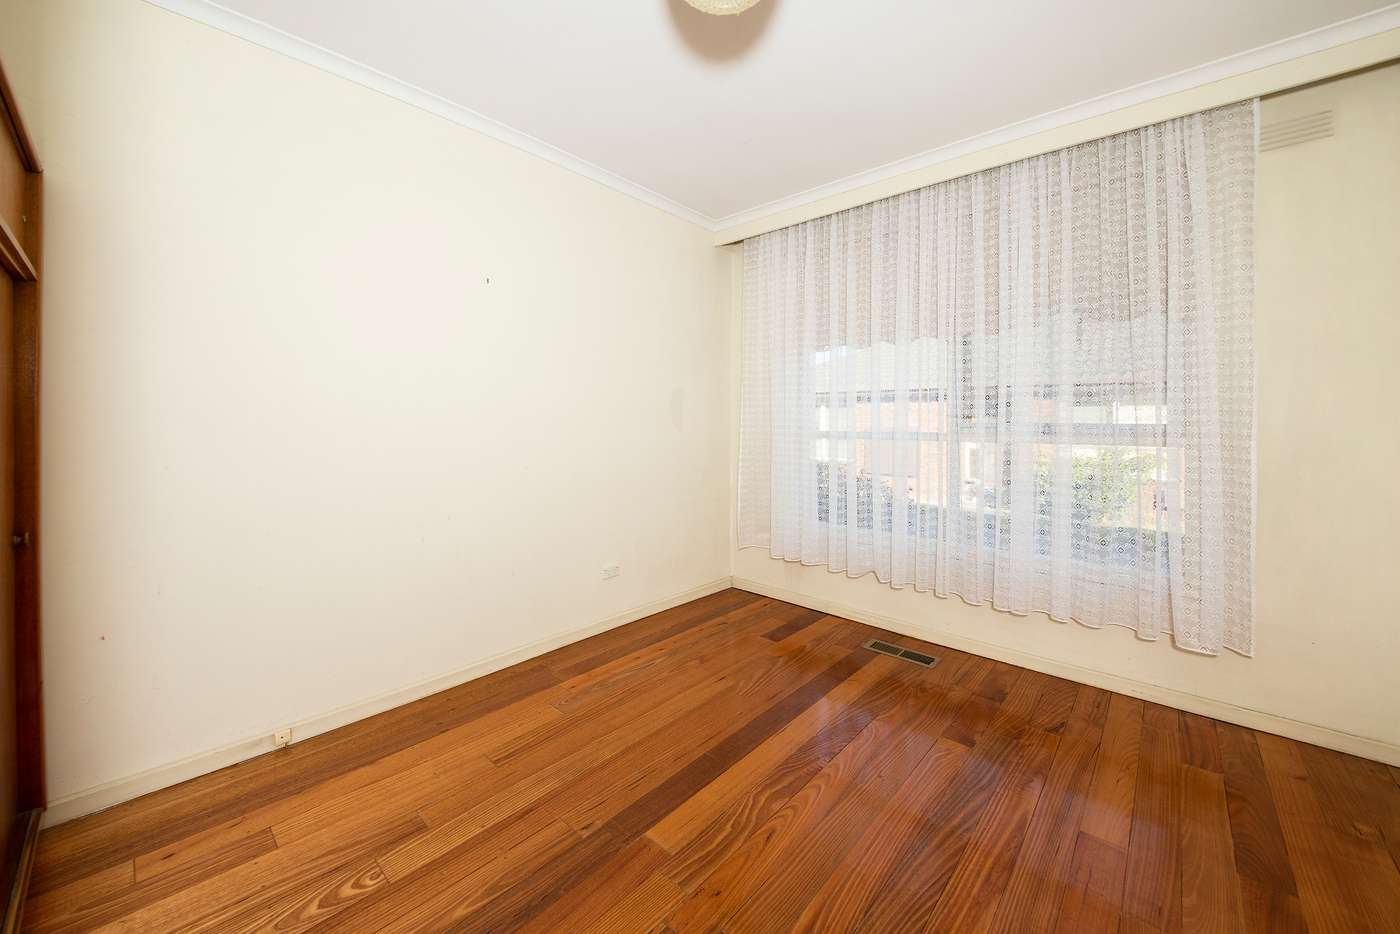 Fifth view of Homely unit listing, 10/15-17 Kangaroo Road, Murrumbeena VIC 3163